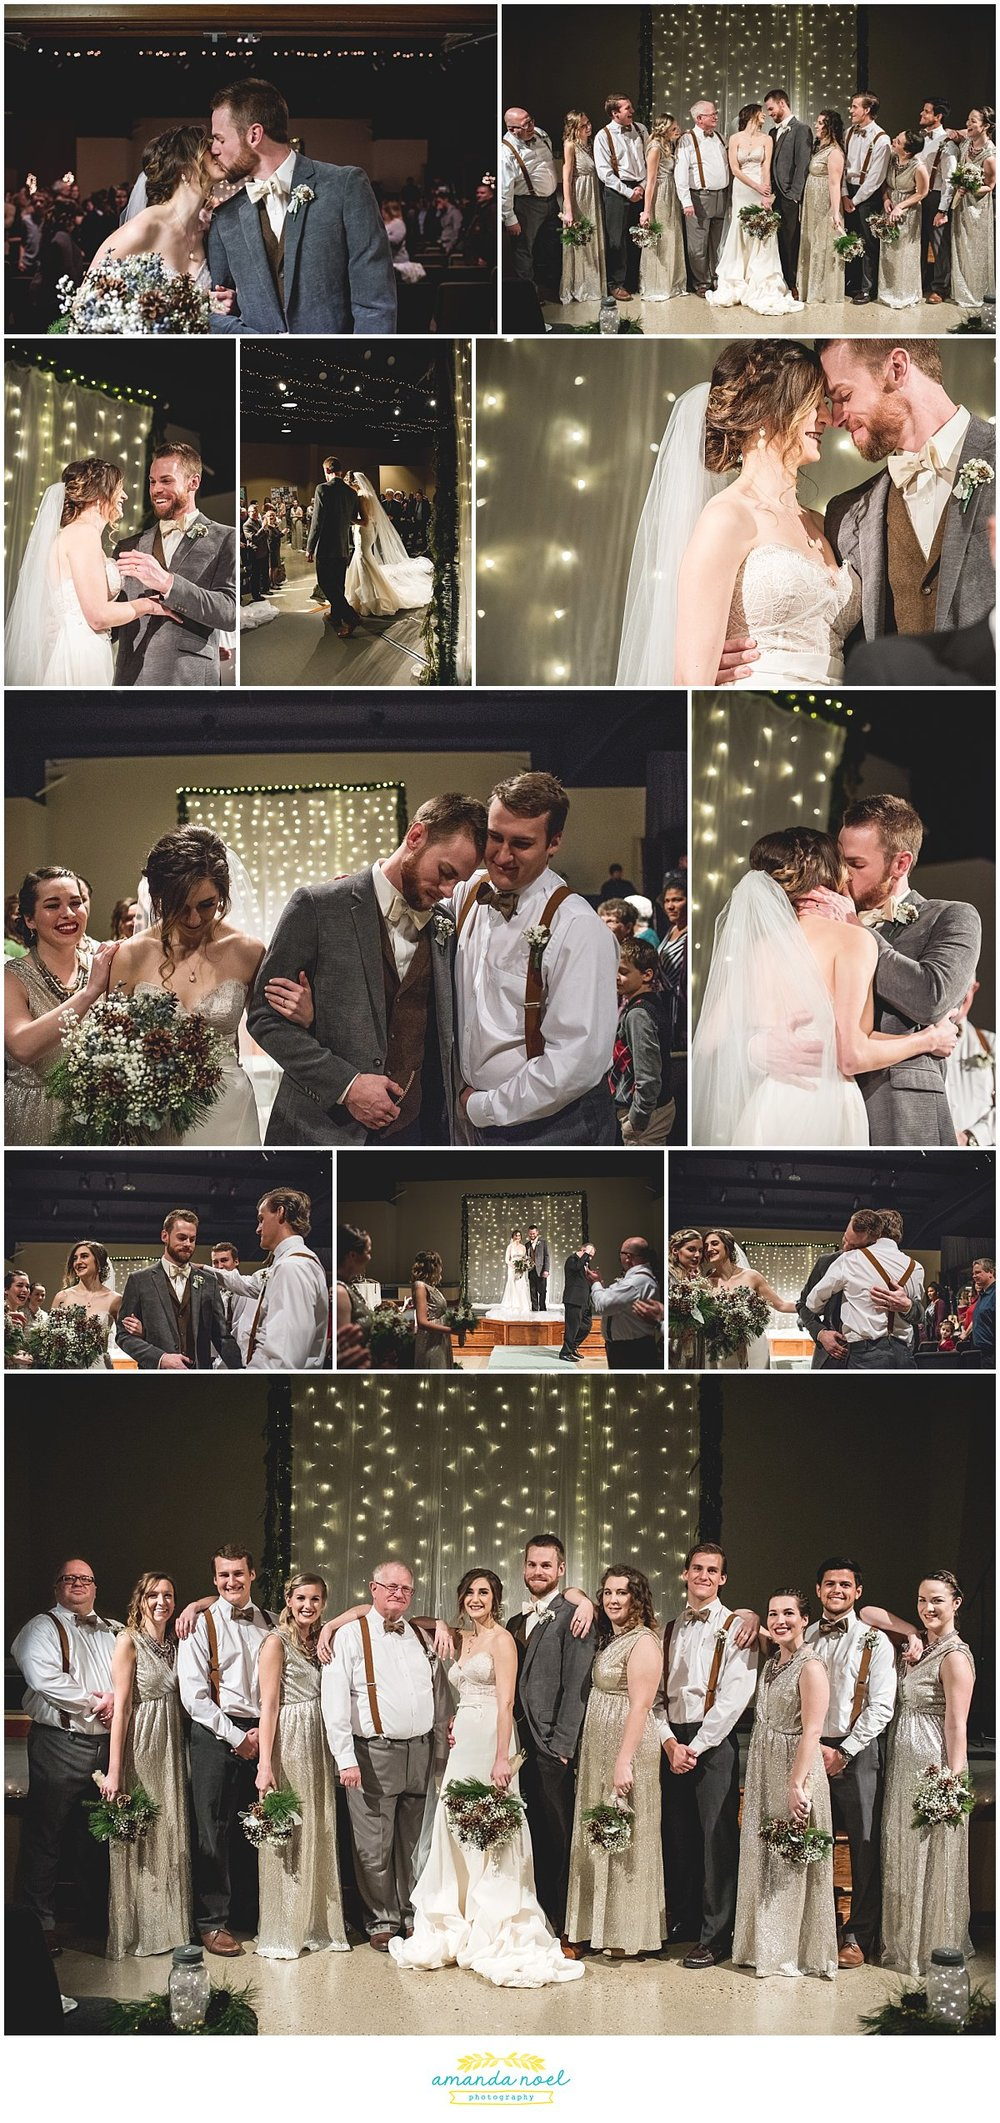 Springfield Ohio winter wedding candlight church ceremony | Amanda Noel Photography